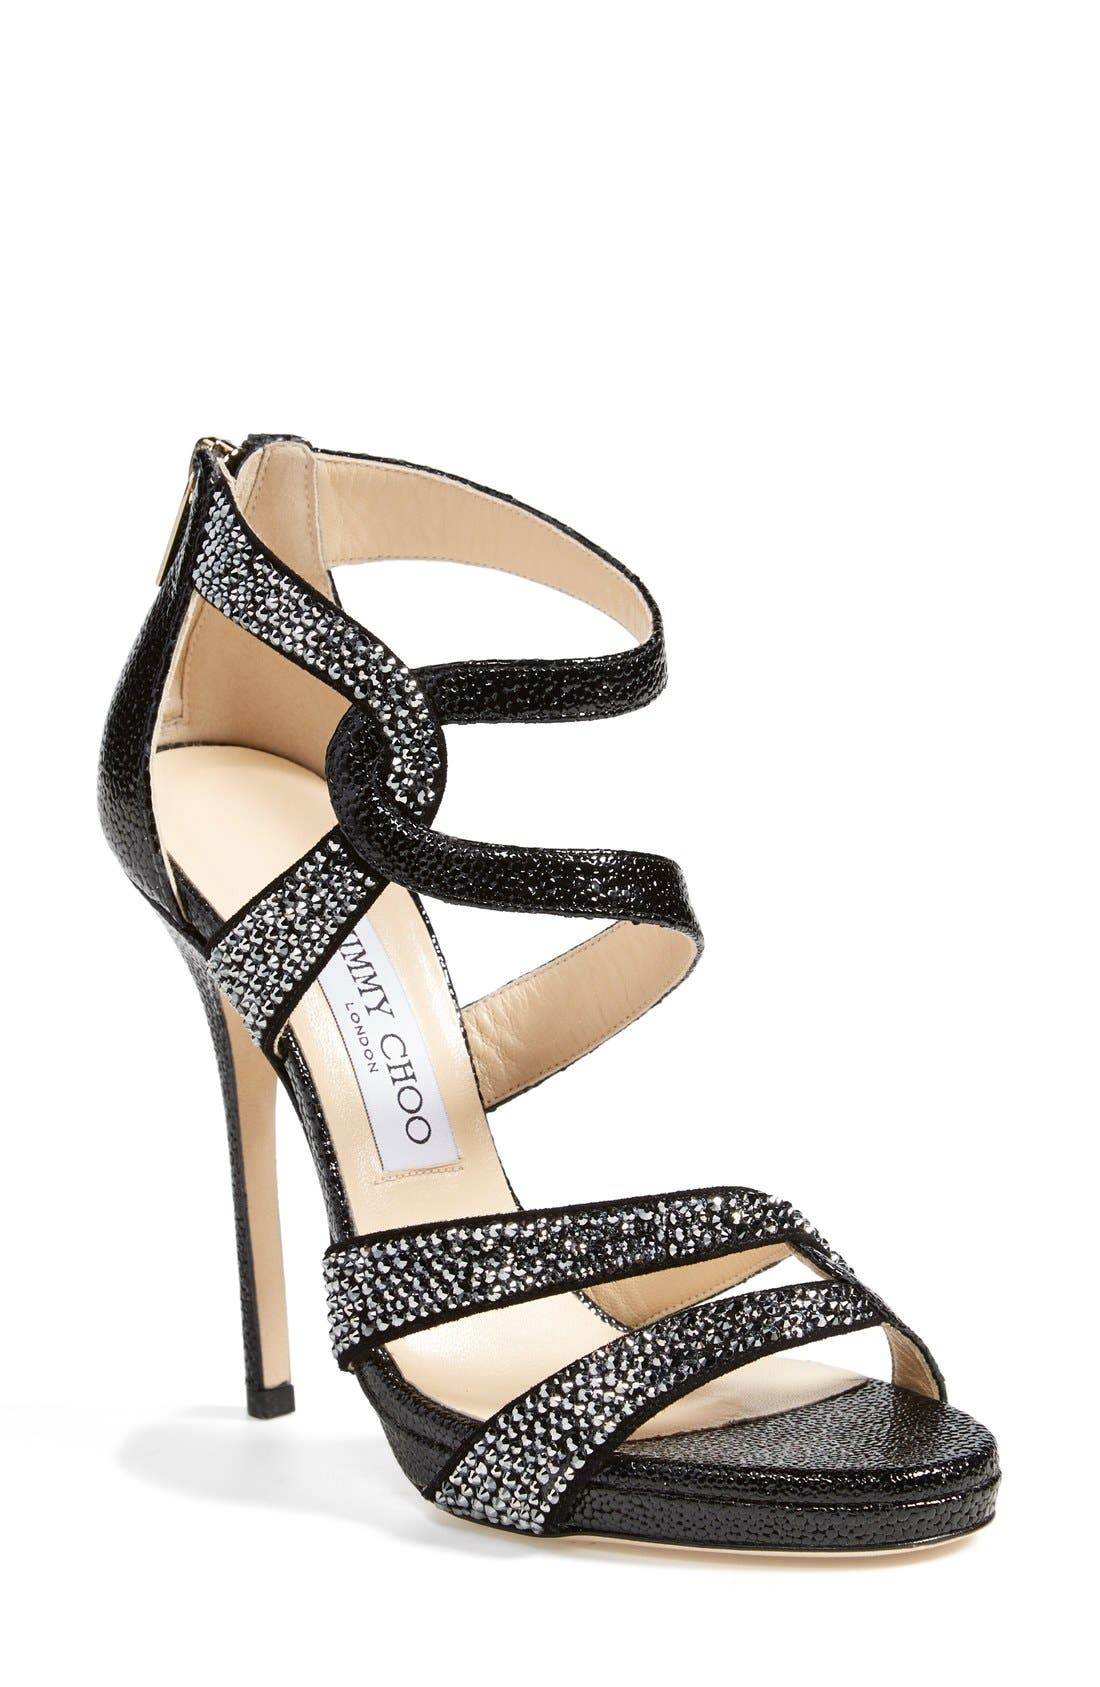 Alternate Image 1 Selected - Jimmy Choo 'Taint' Platform Sandal (Women)